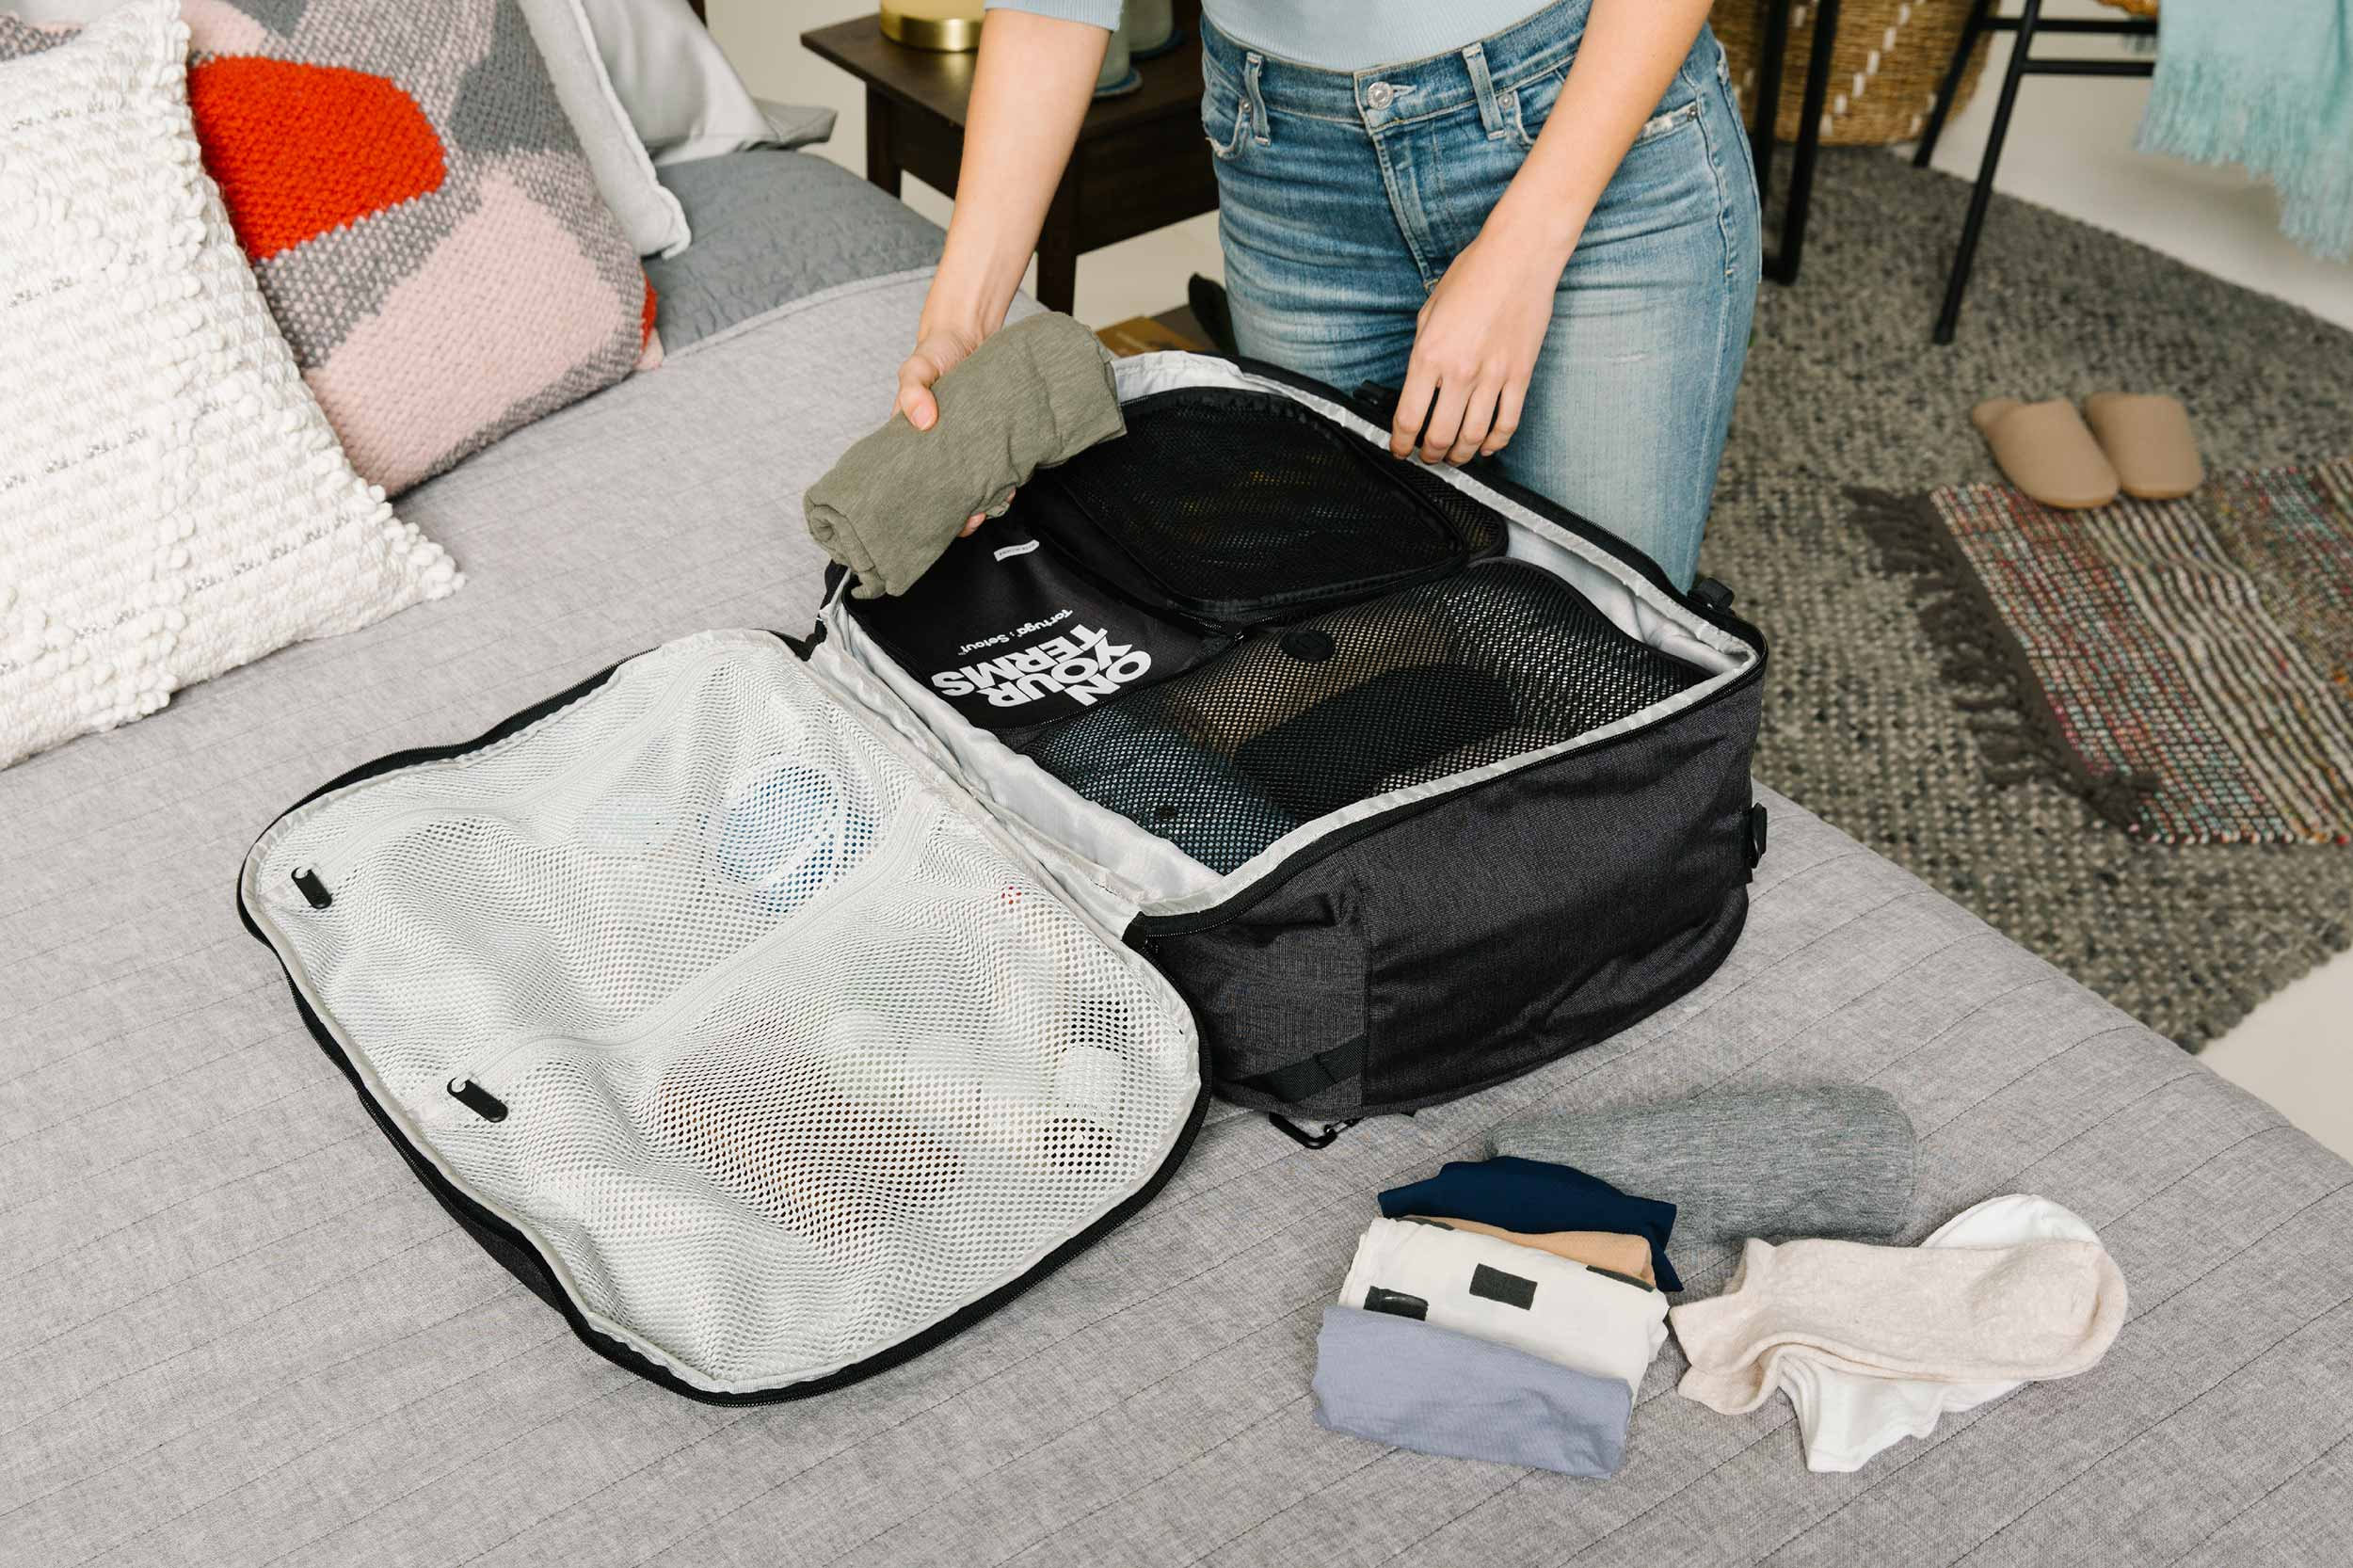 How To Keep Your Luggage And Clothes From Stinking Tortuga